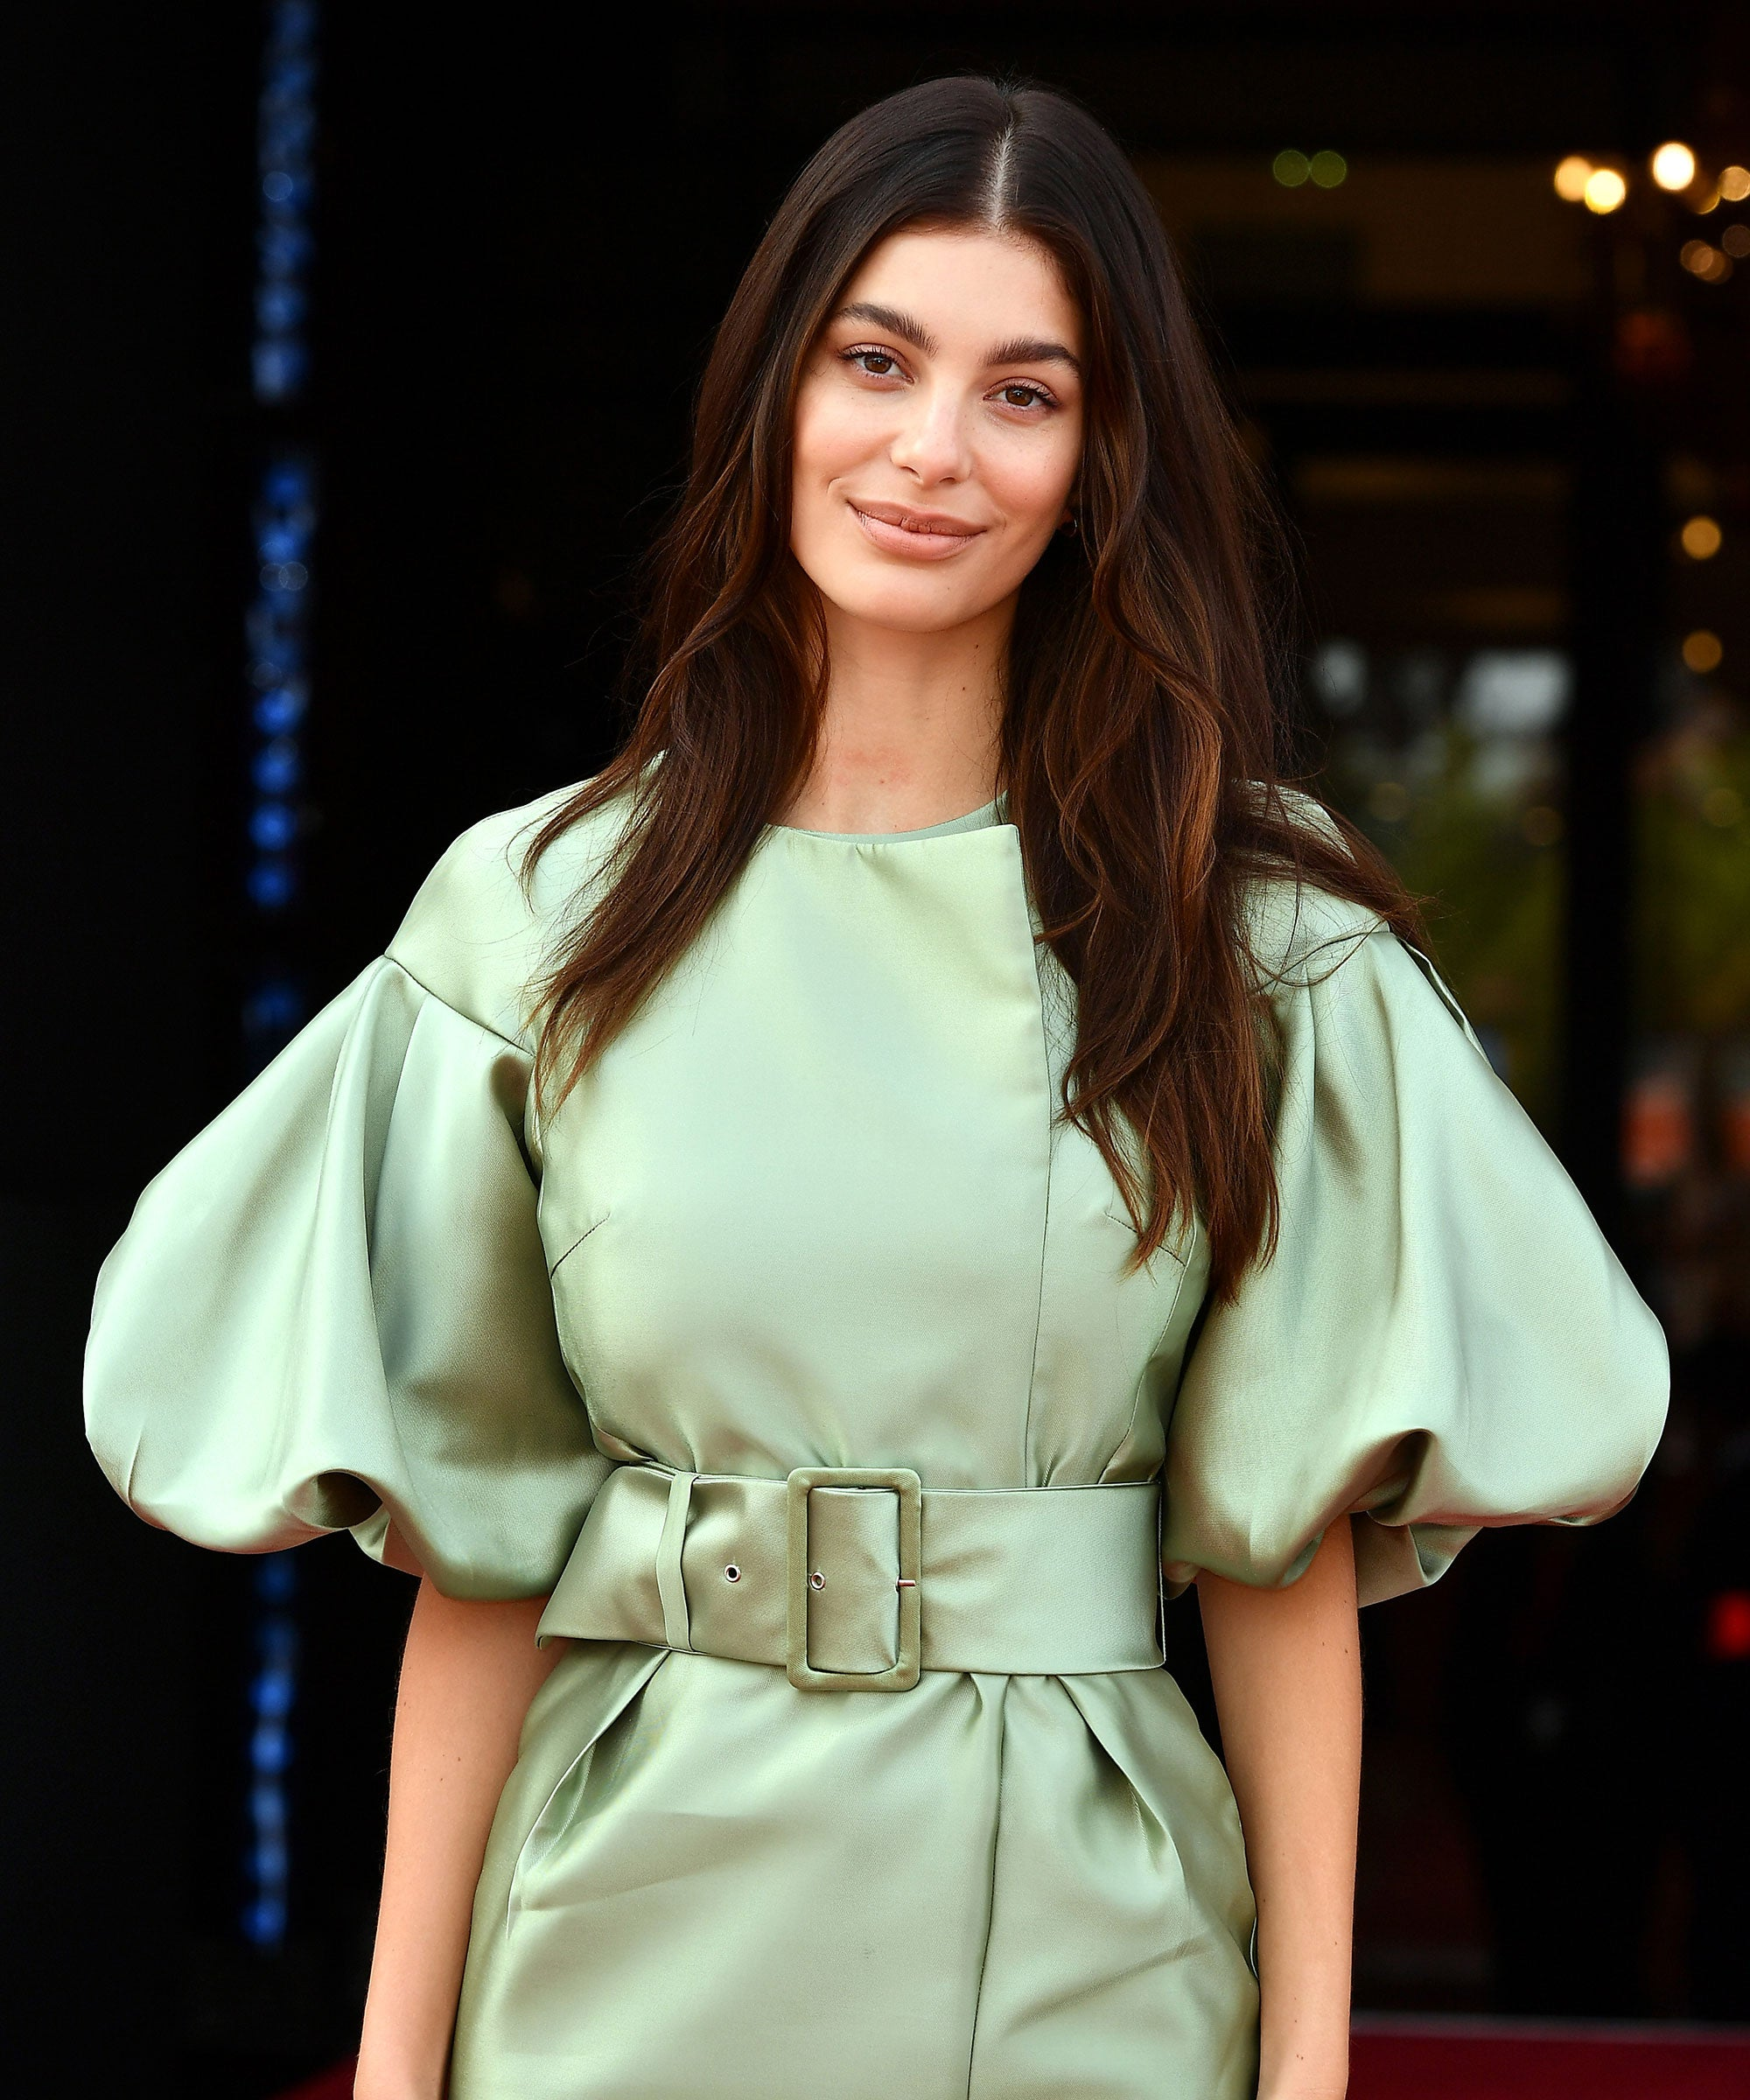 """Camila Morrone Is Tired Of Her Identity Being """"Leonardo DiCaprio's Girlfriend"""""""